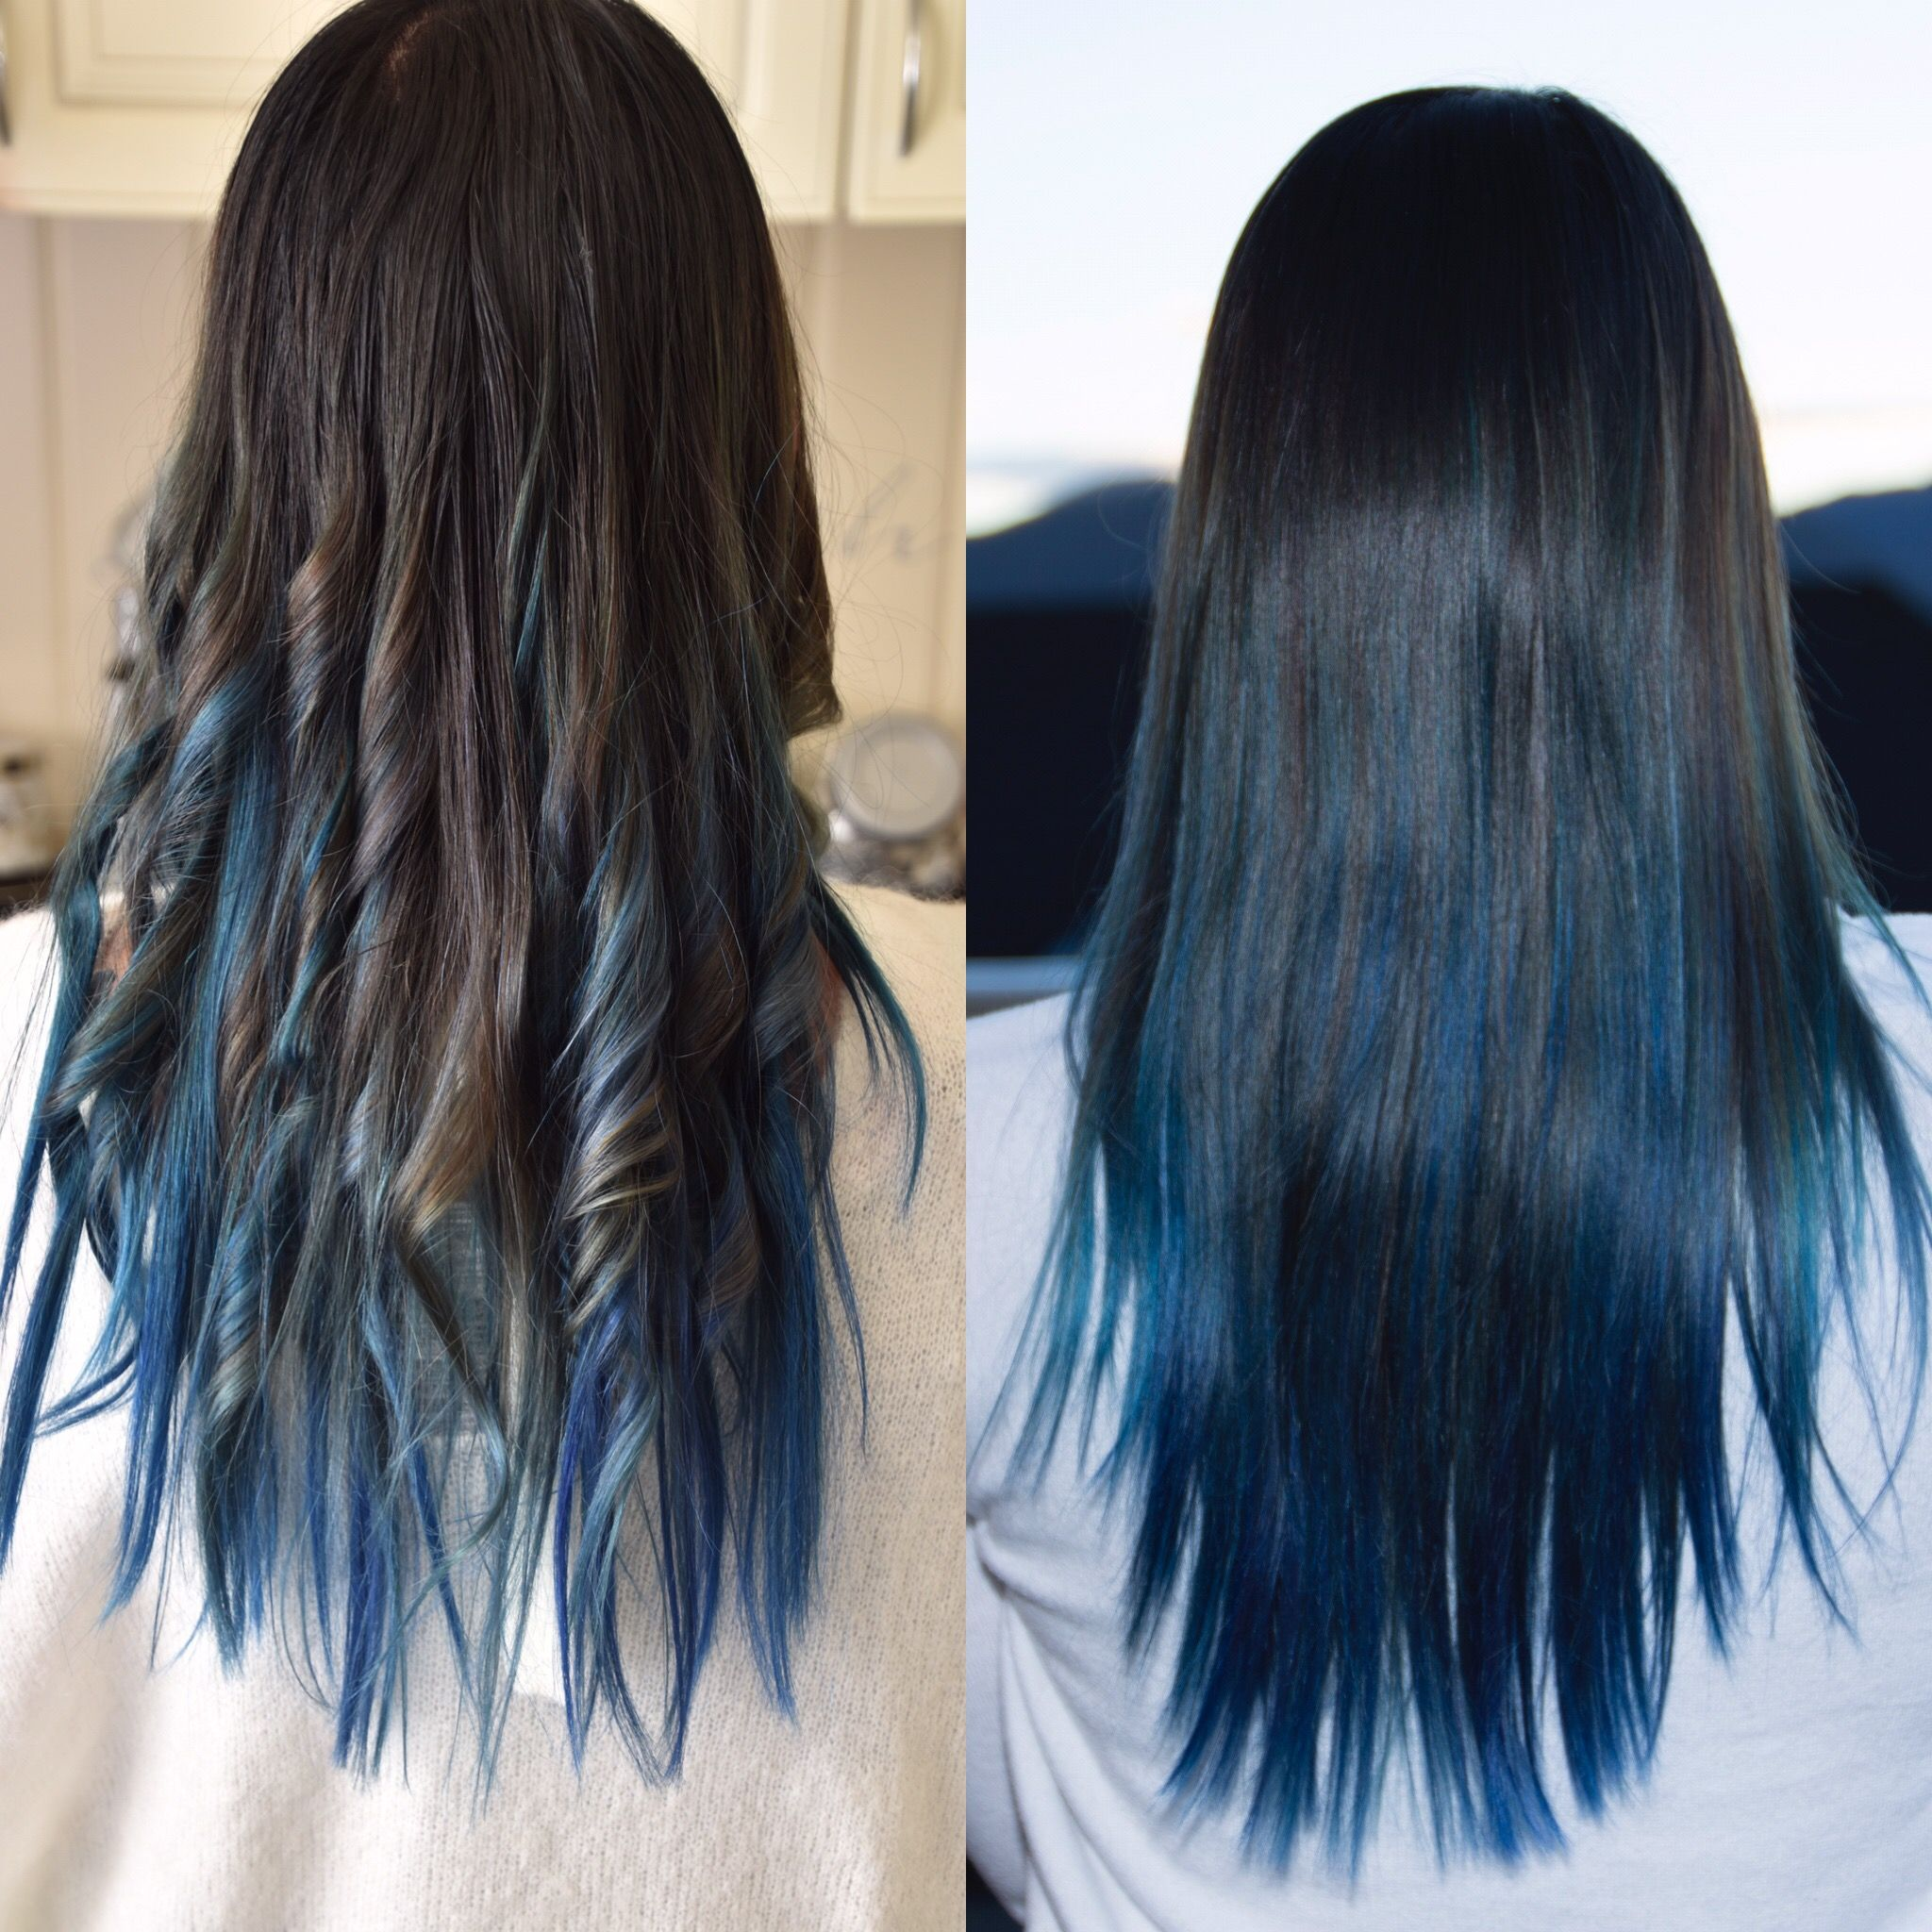 Dark Brown In The Top And Diffrent Blue Color In Bottom Hair